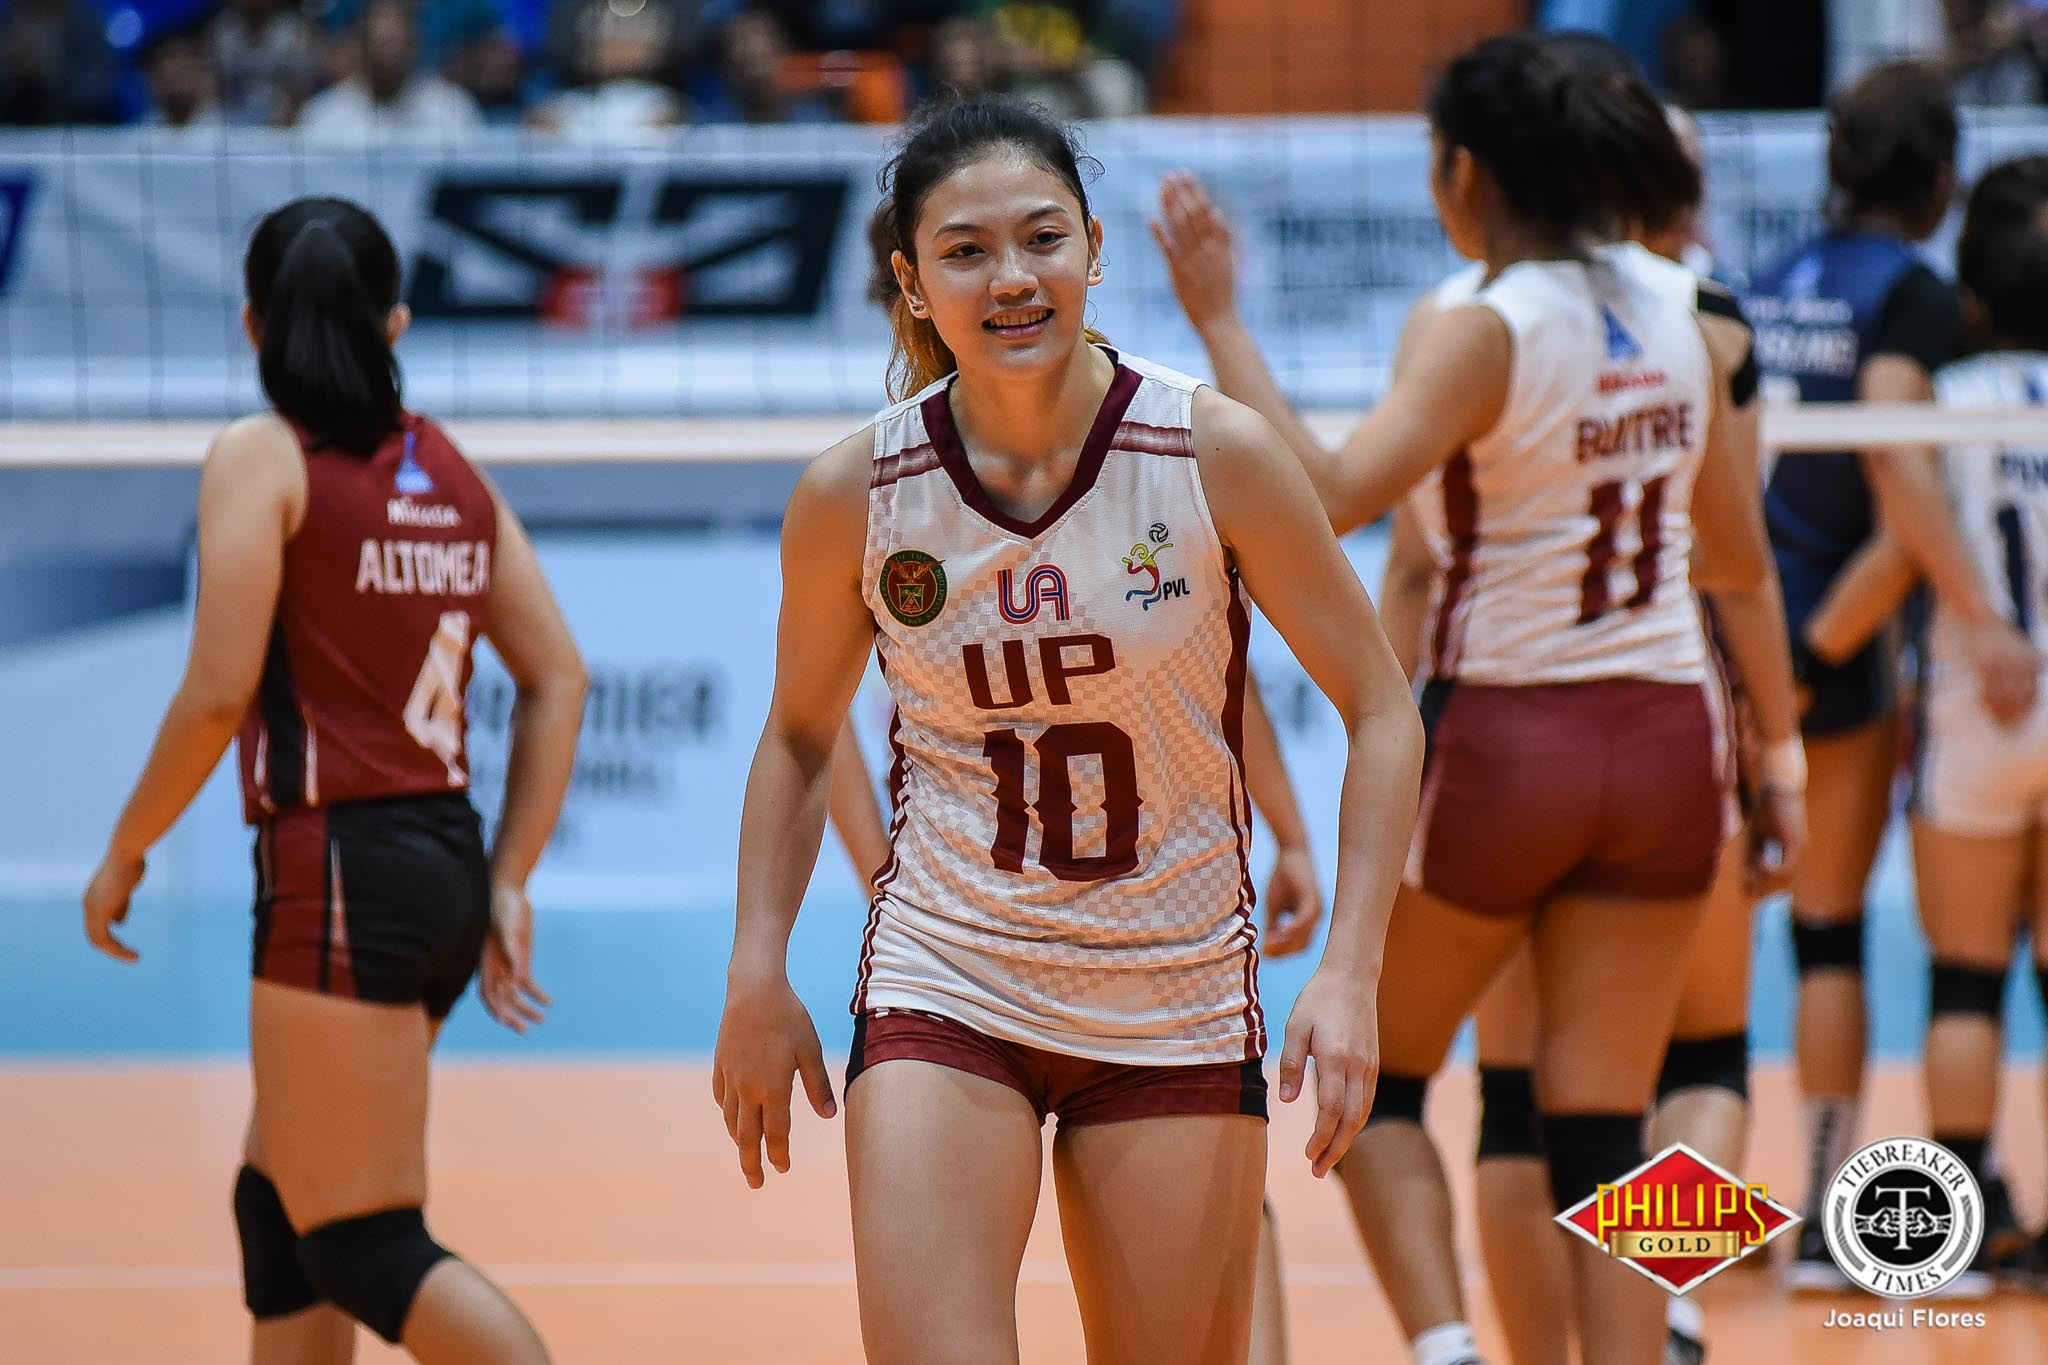 Tiebreaker Times Raucous UP crowd lifts Lady Maroons News PVL UP Volleyball  UP Women's Volleyball Isa Molde Godfrey Okumu 2018 PVL Women's Collegiate Conference 2018 PVL Season